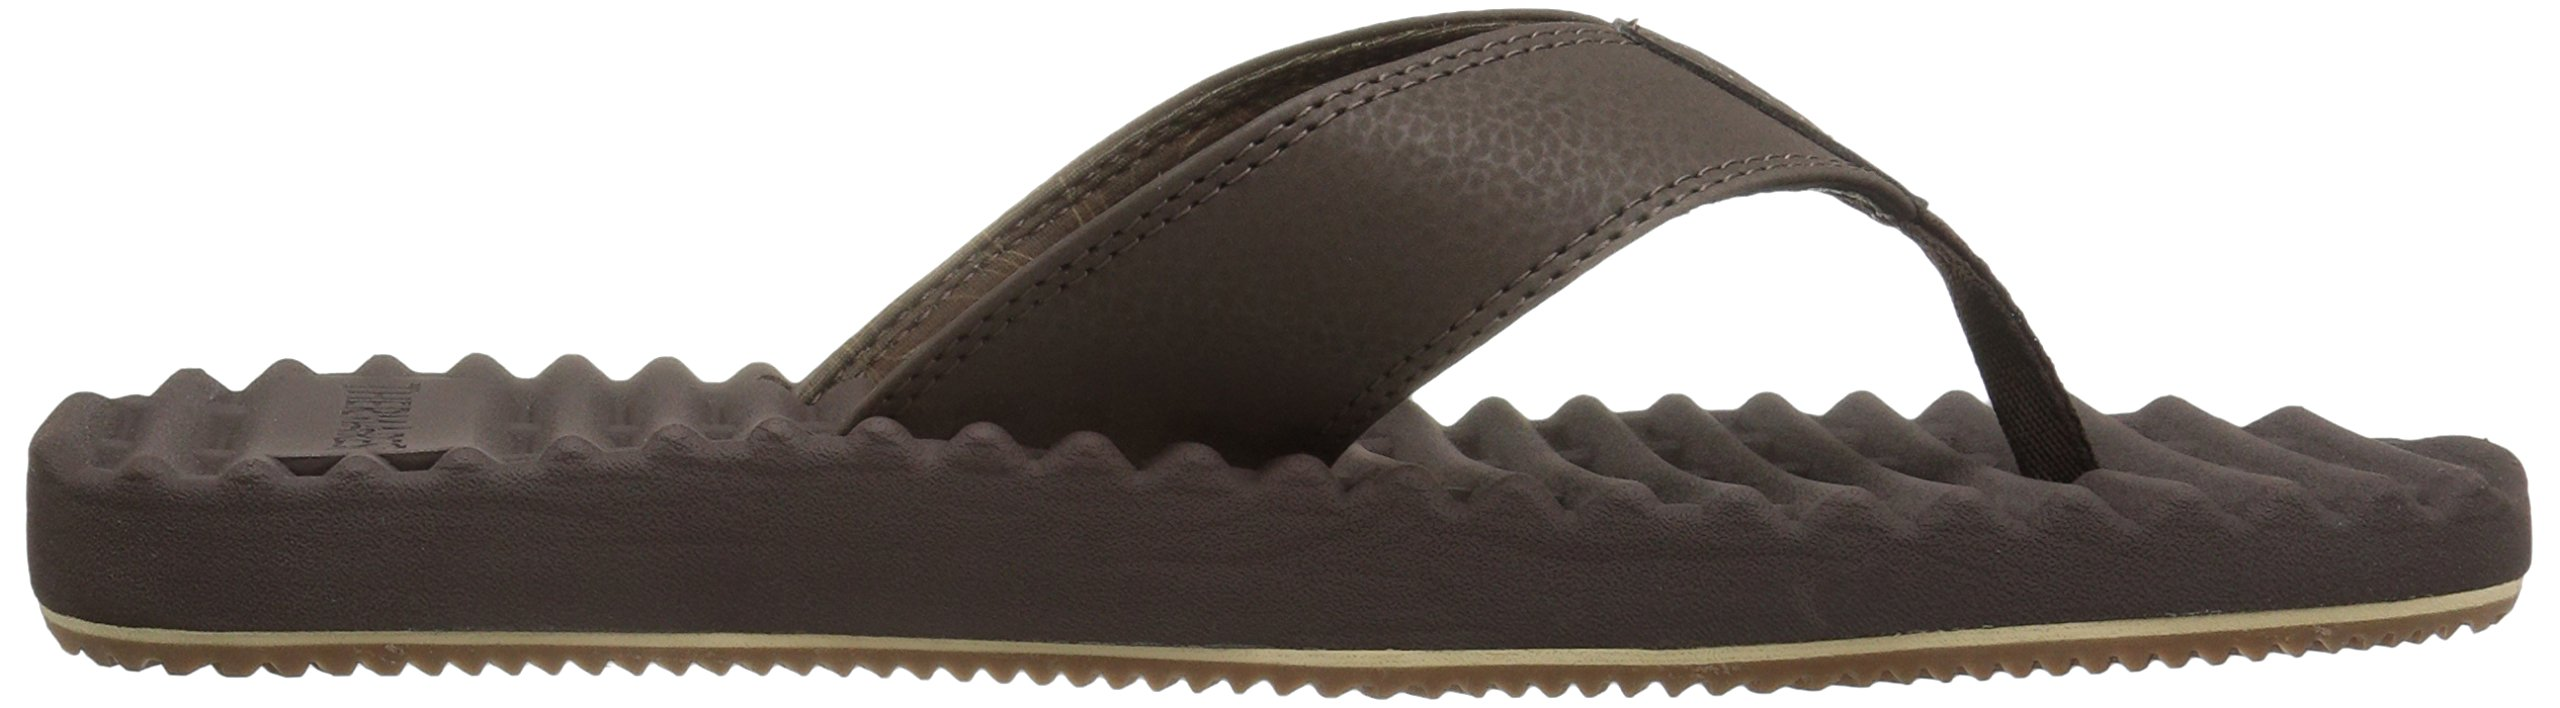 Freewaters Men's Basecamp Therm-a-Rest Flip Flop Sandal, Brown, 10 M US by Freewaters (Image #7)